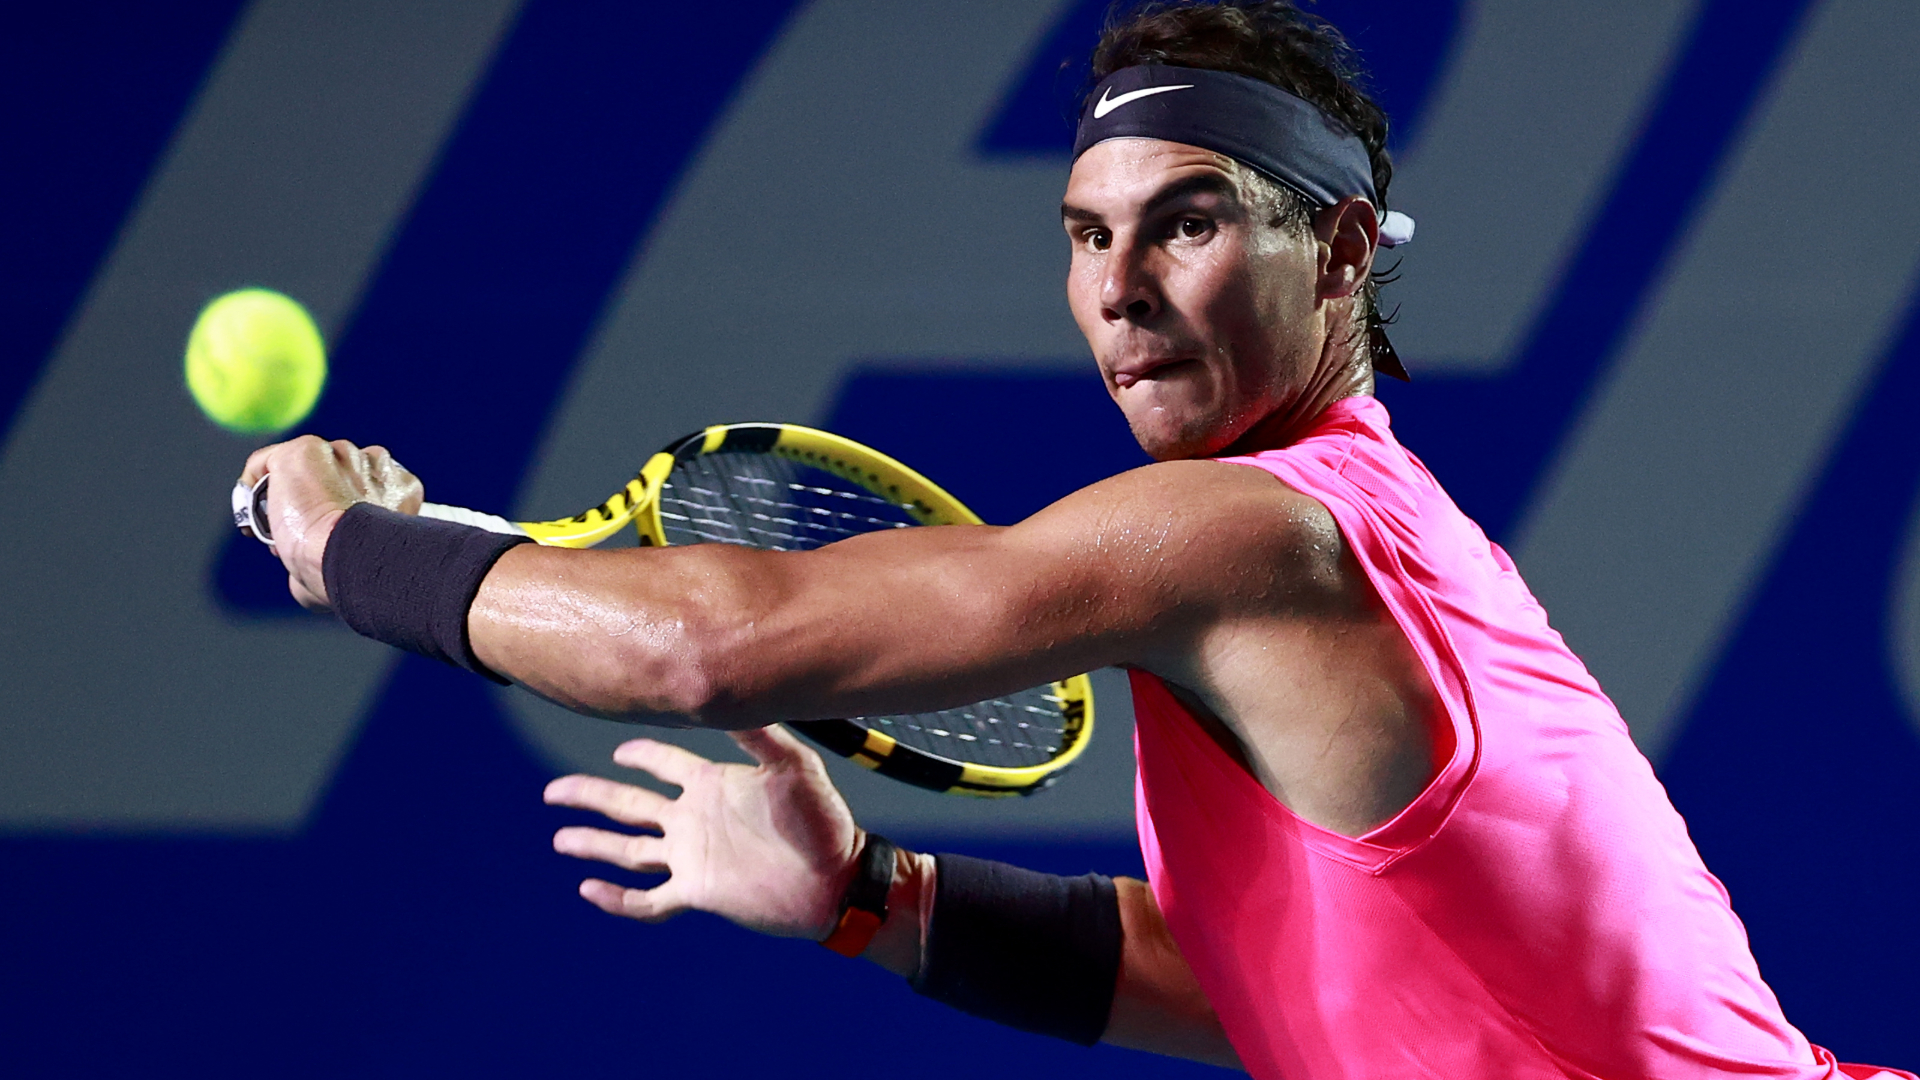 Rafa Nadal Doesn T Give A Damn About Tennis Right Now Says Coach Toni Tennis News Stadium Astro